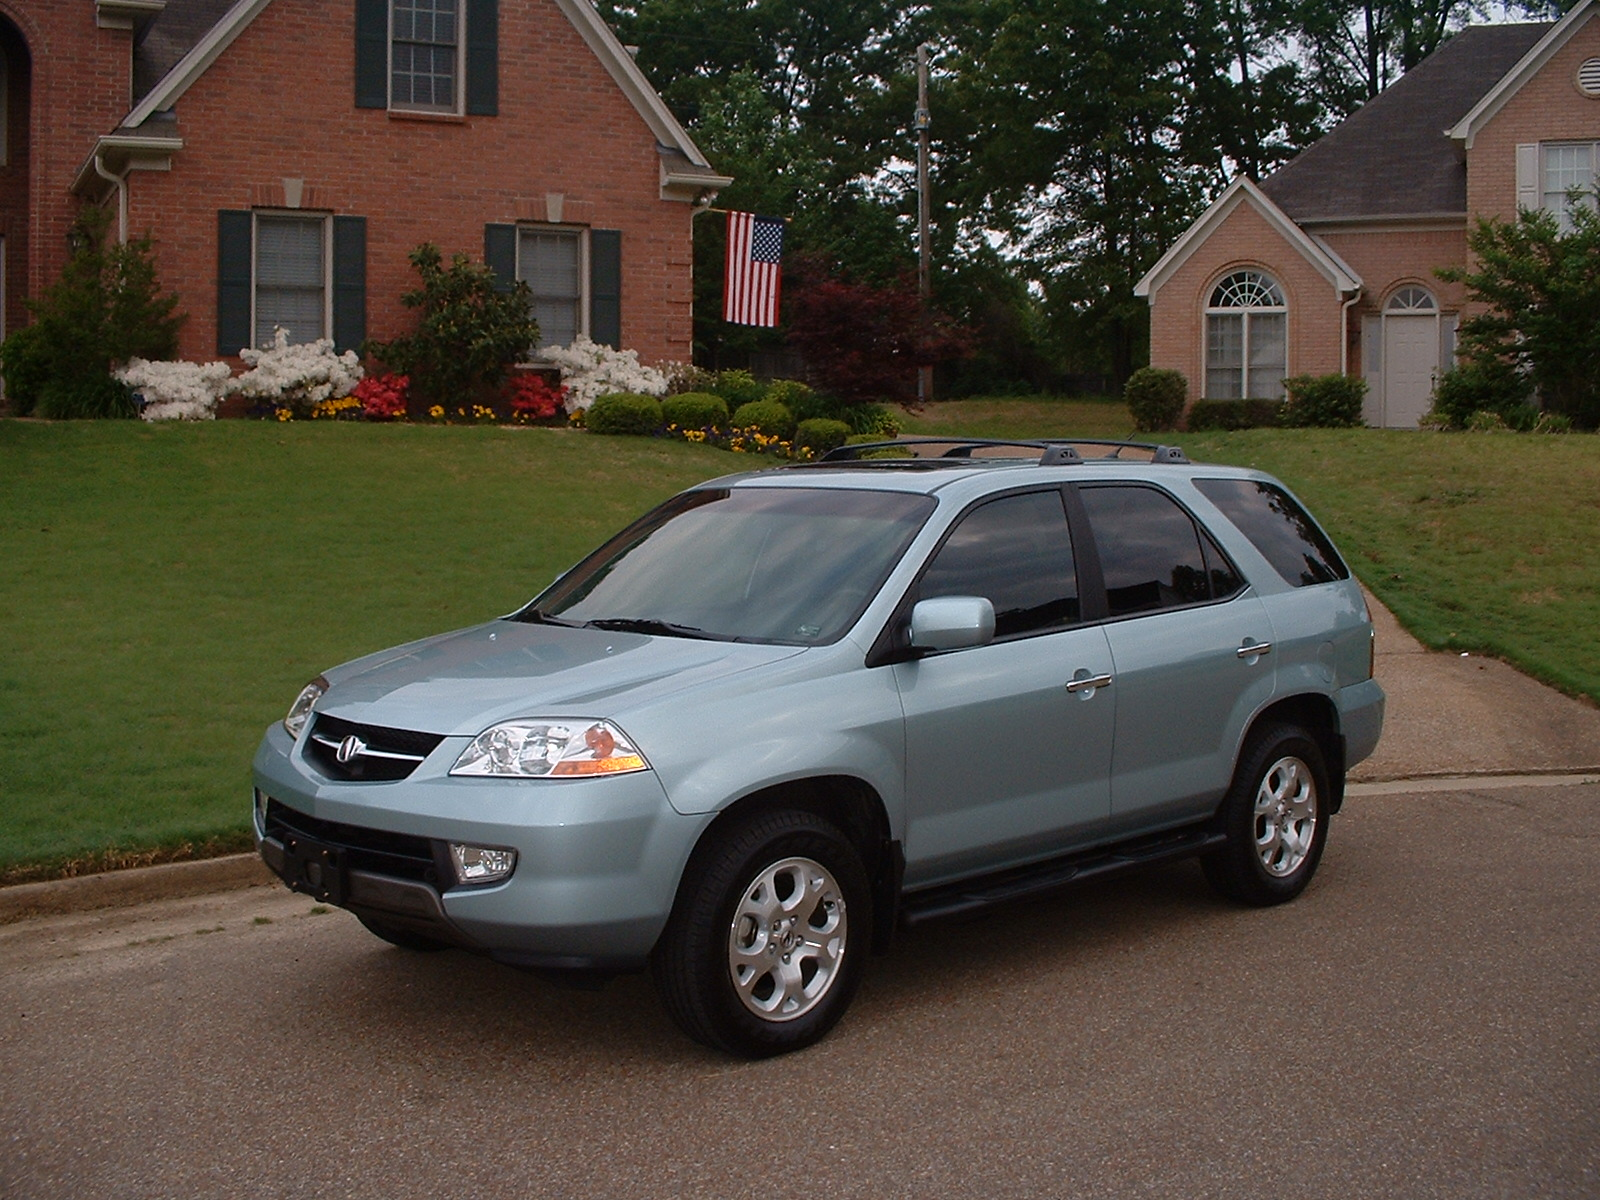 2002 Acura MDX Touring - Pictures - 2002 Acura MDX Touring picture ...